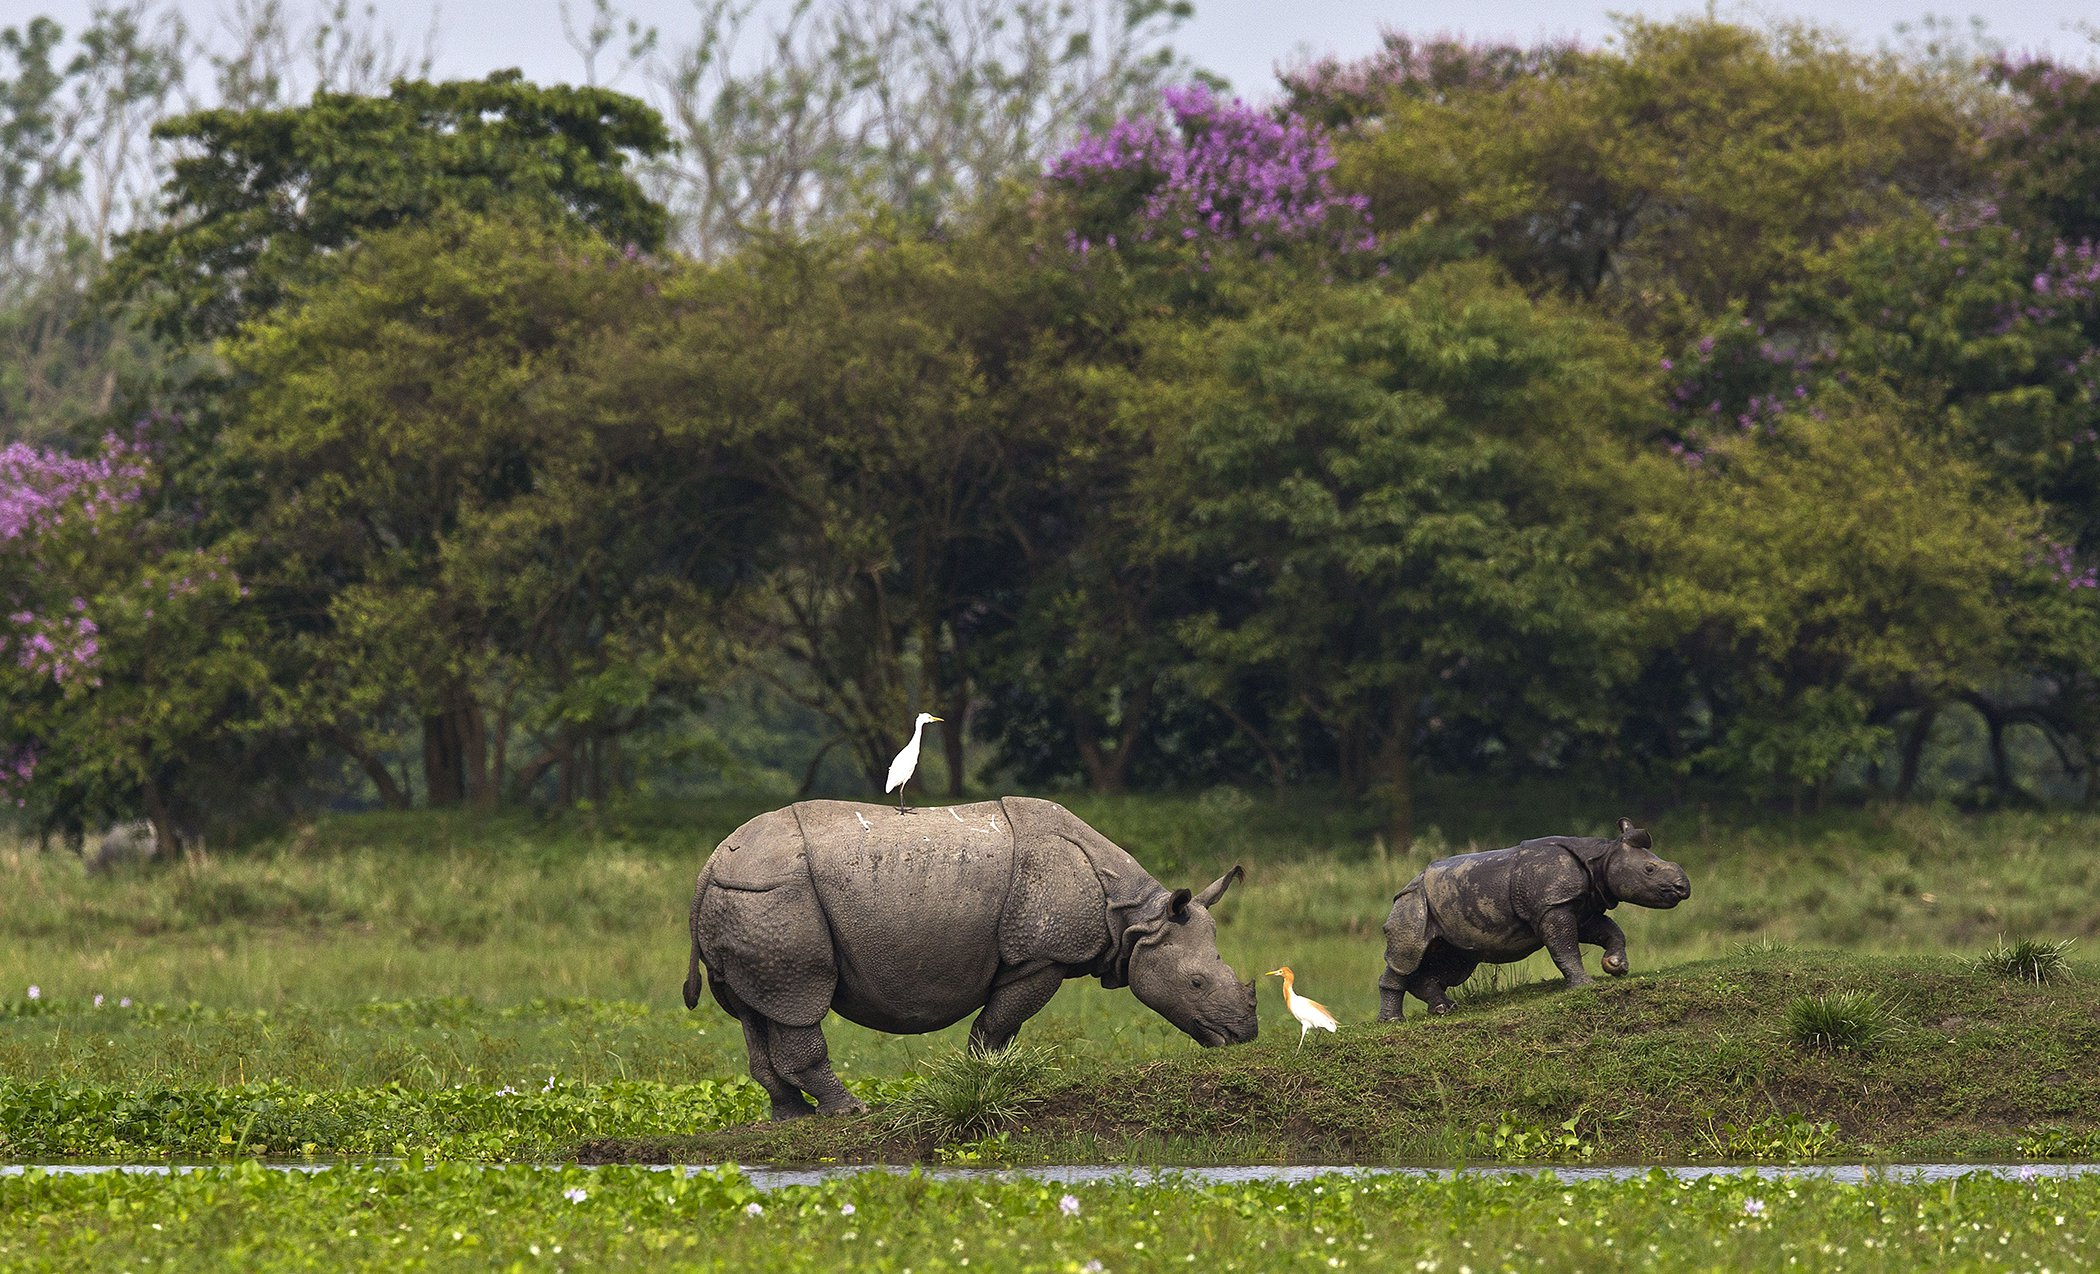 Rhino-India-Conservation.jpg